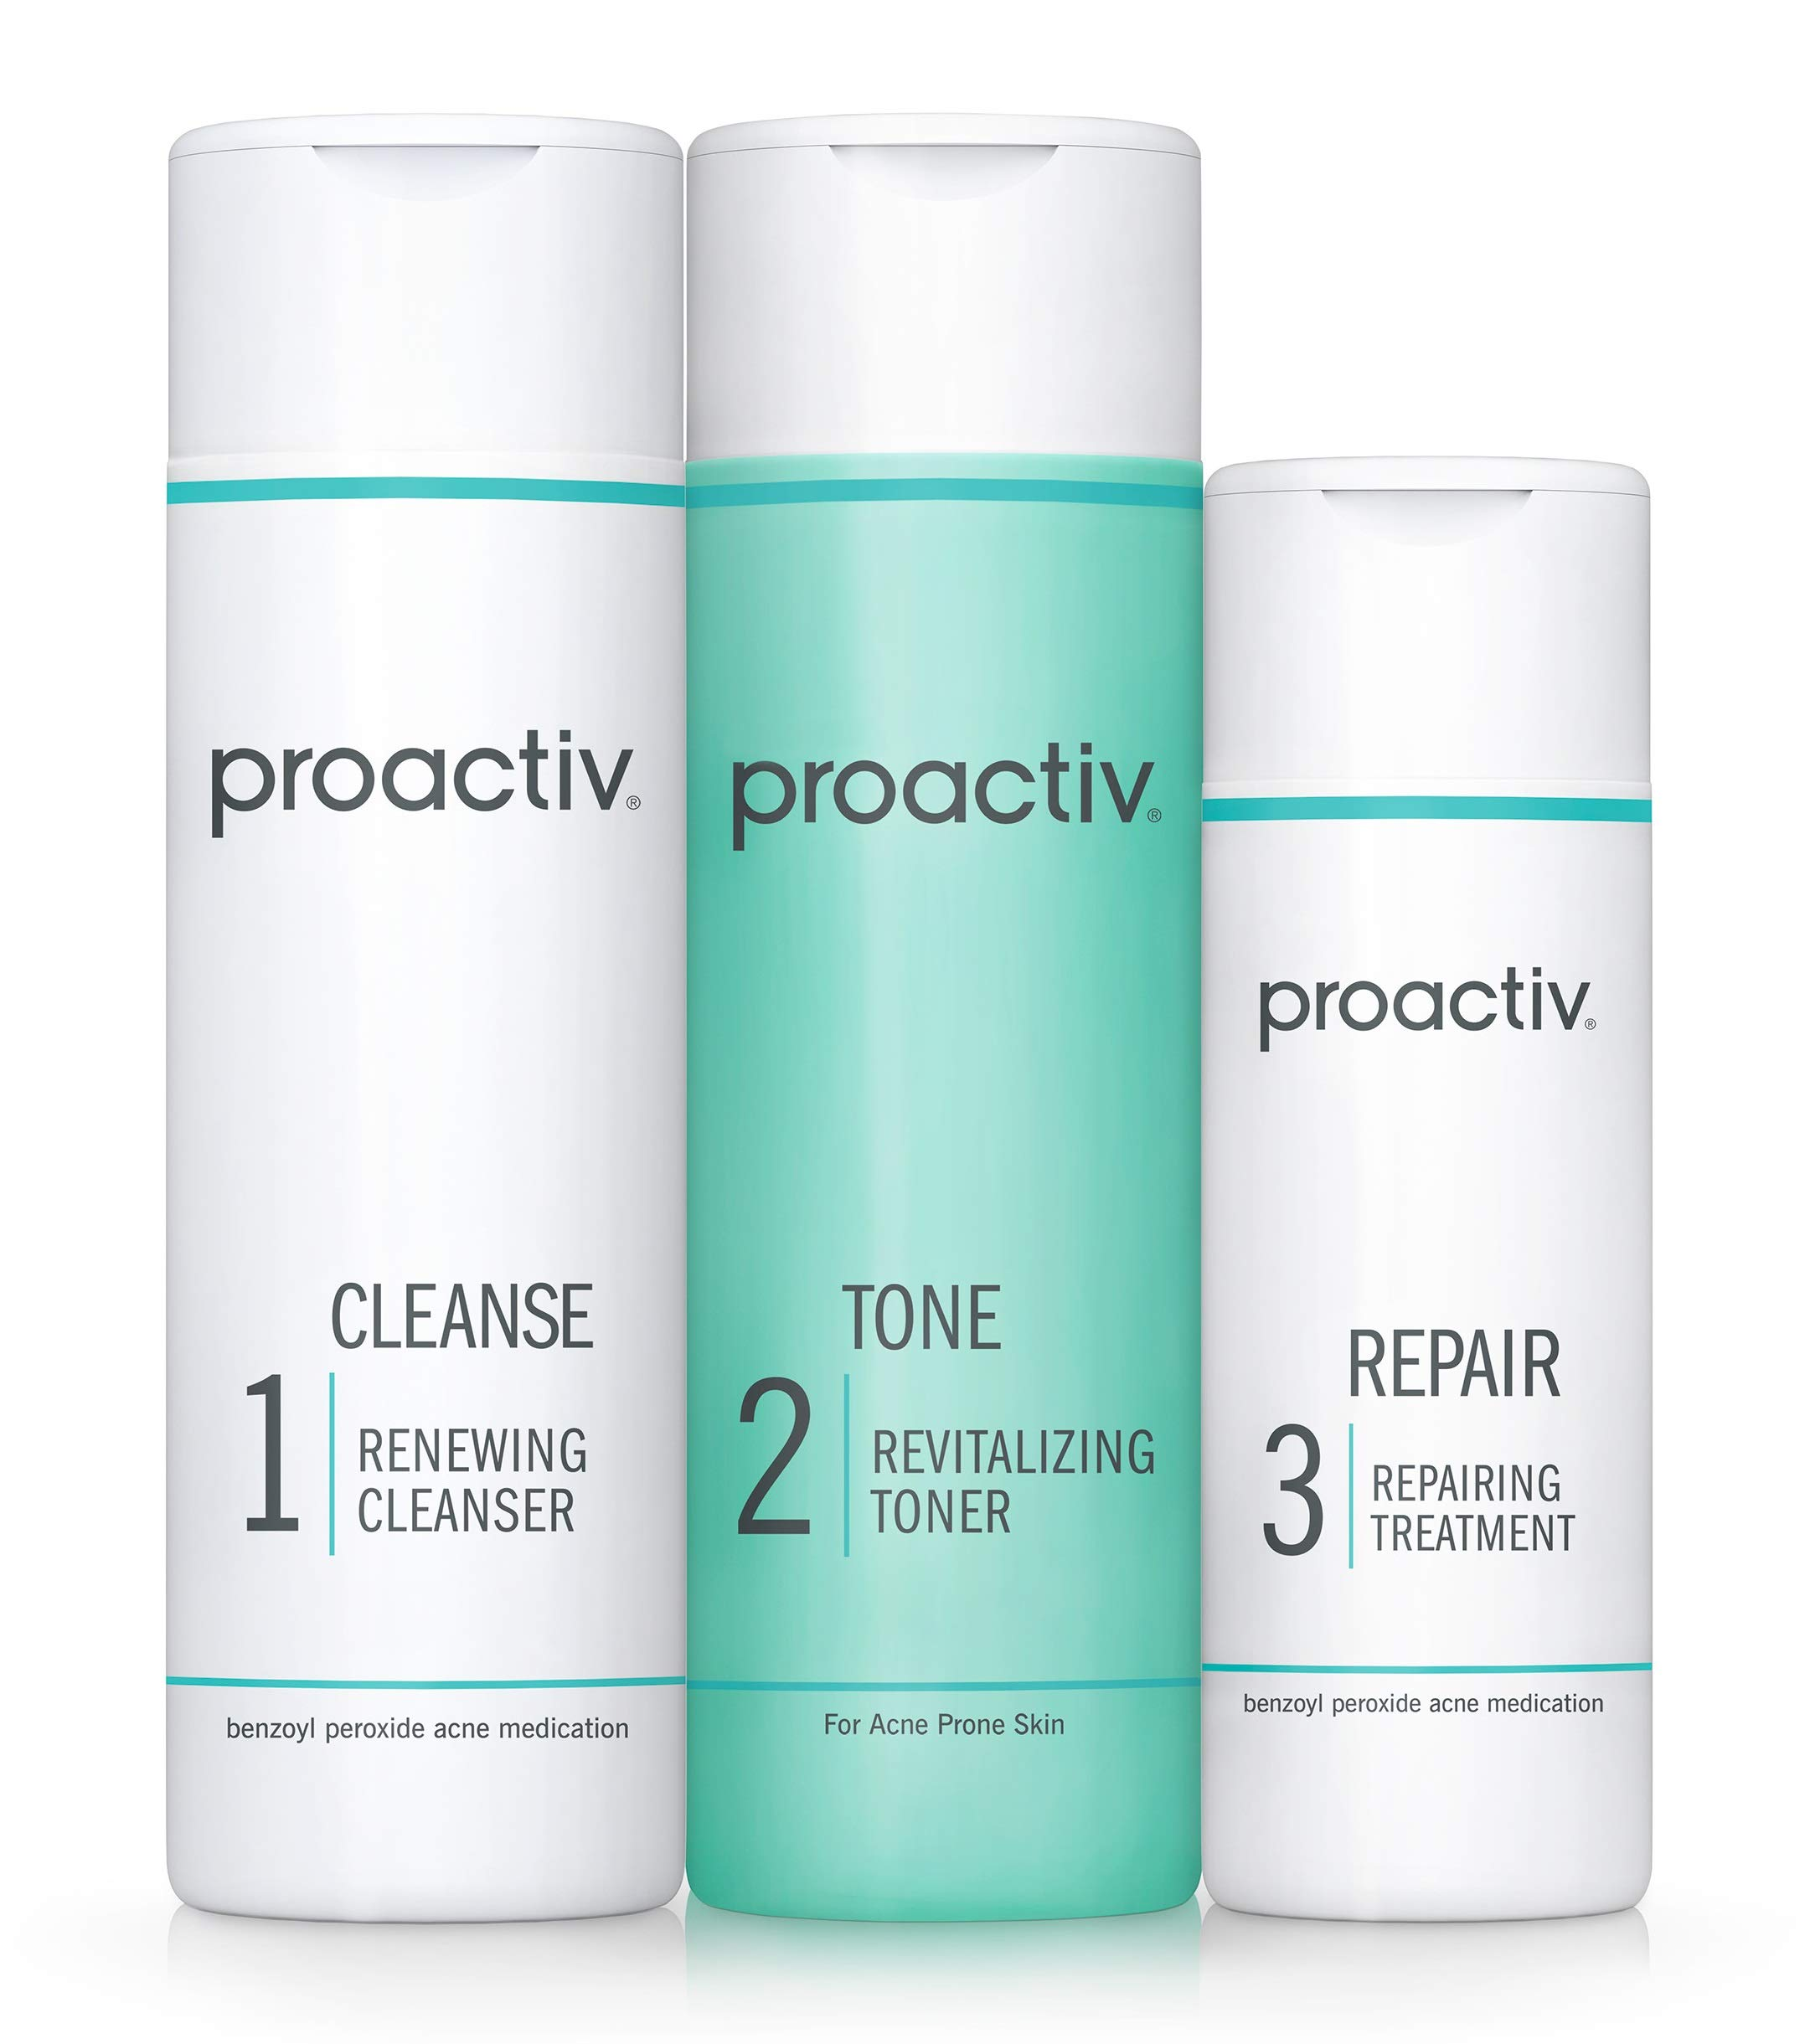 Proactiv 3-Step Acne Treatment System (90 Day) by Proactiv